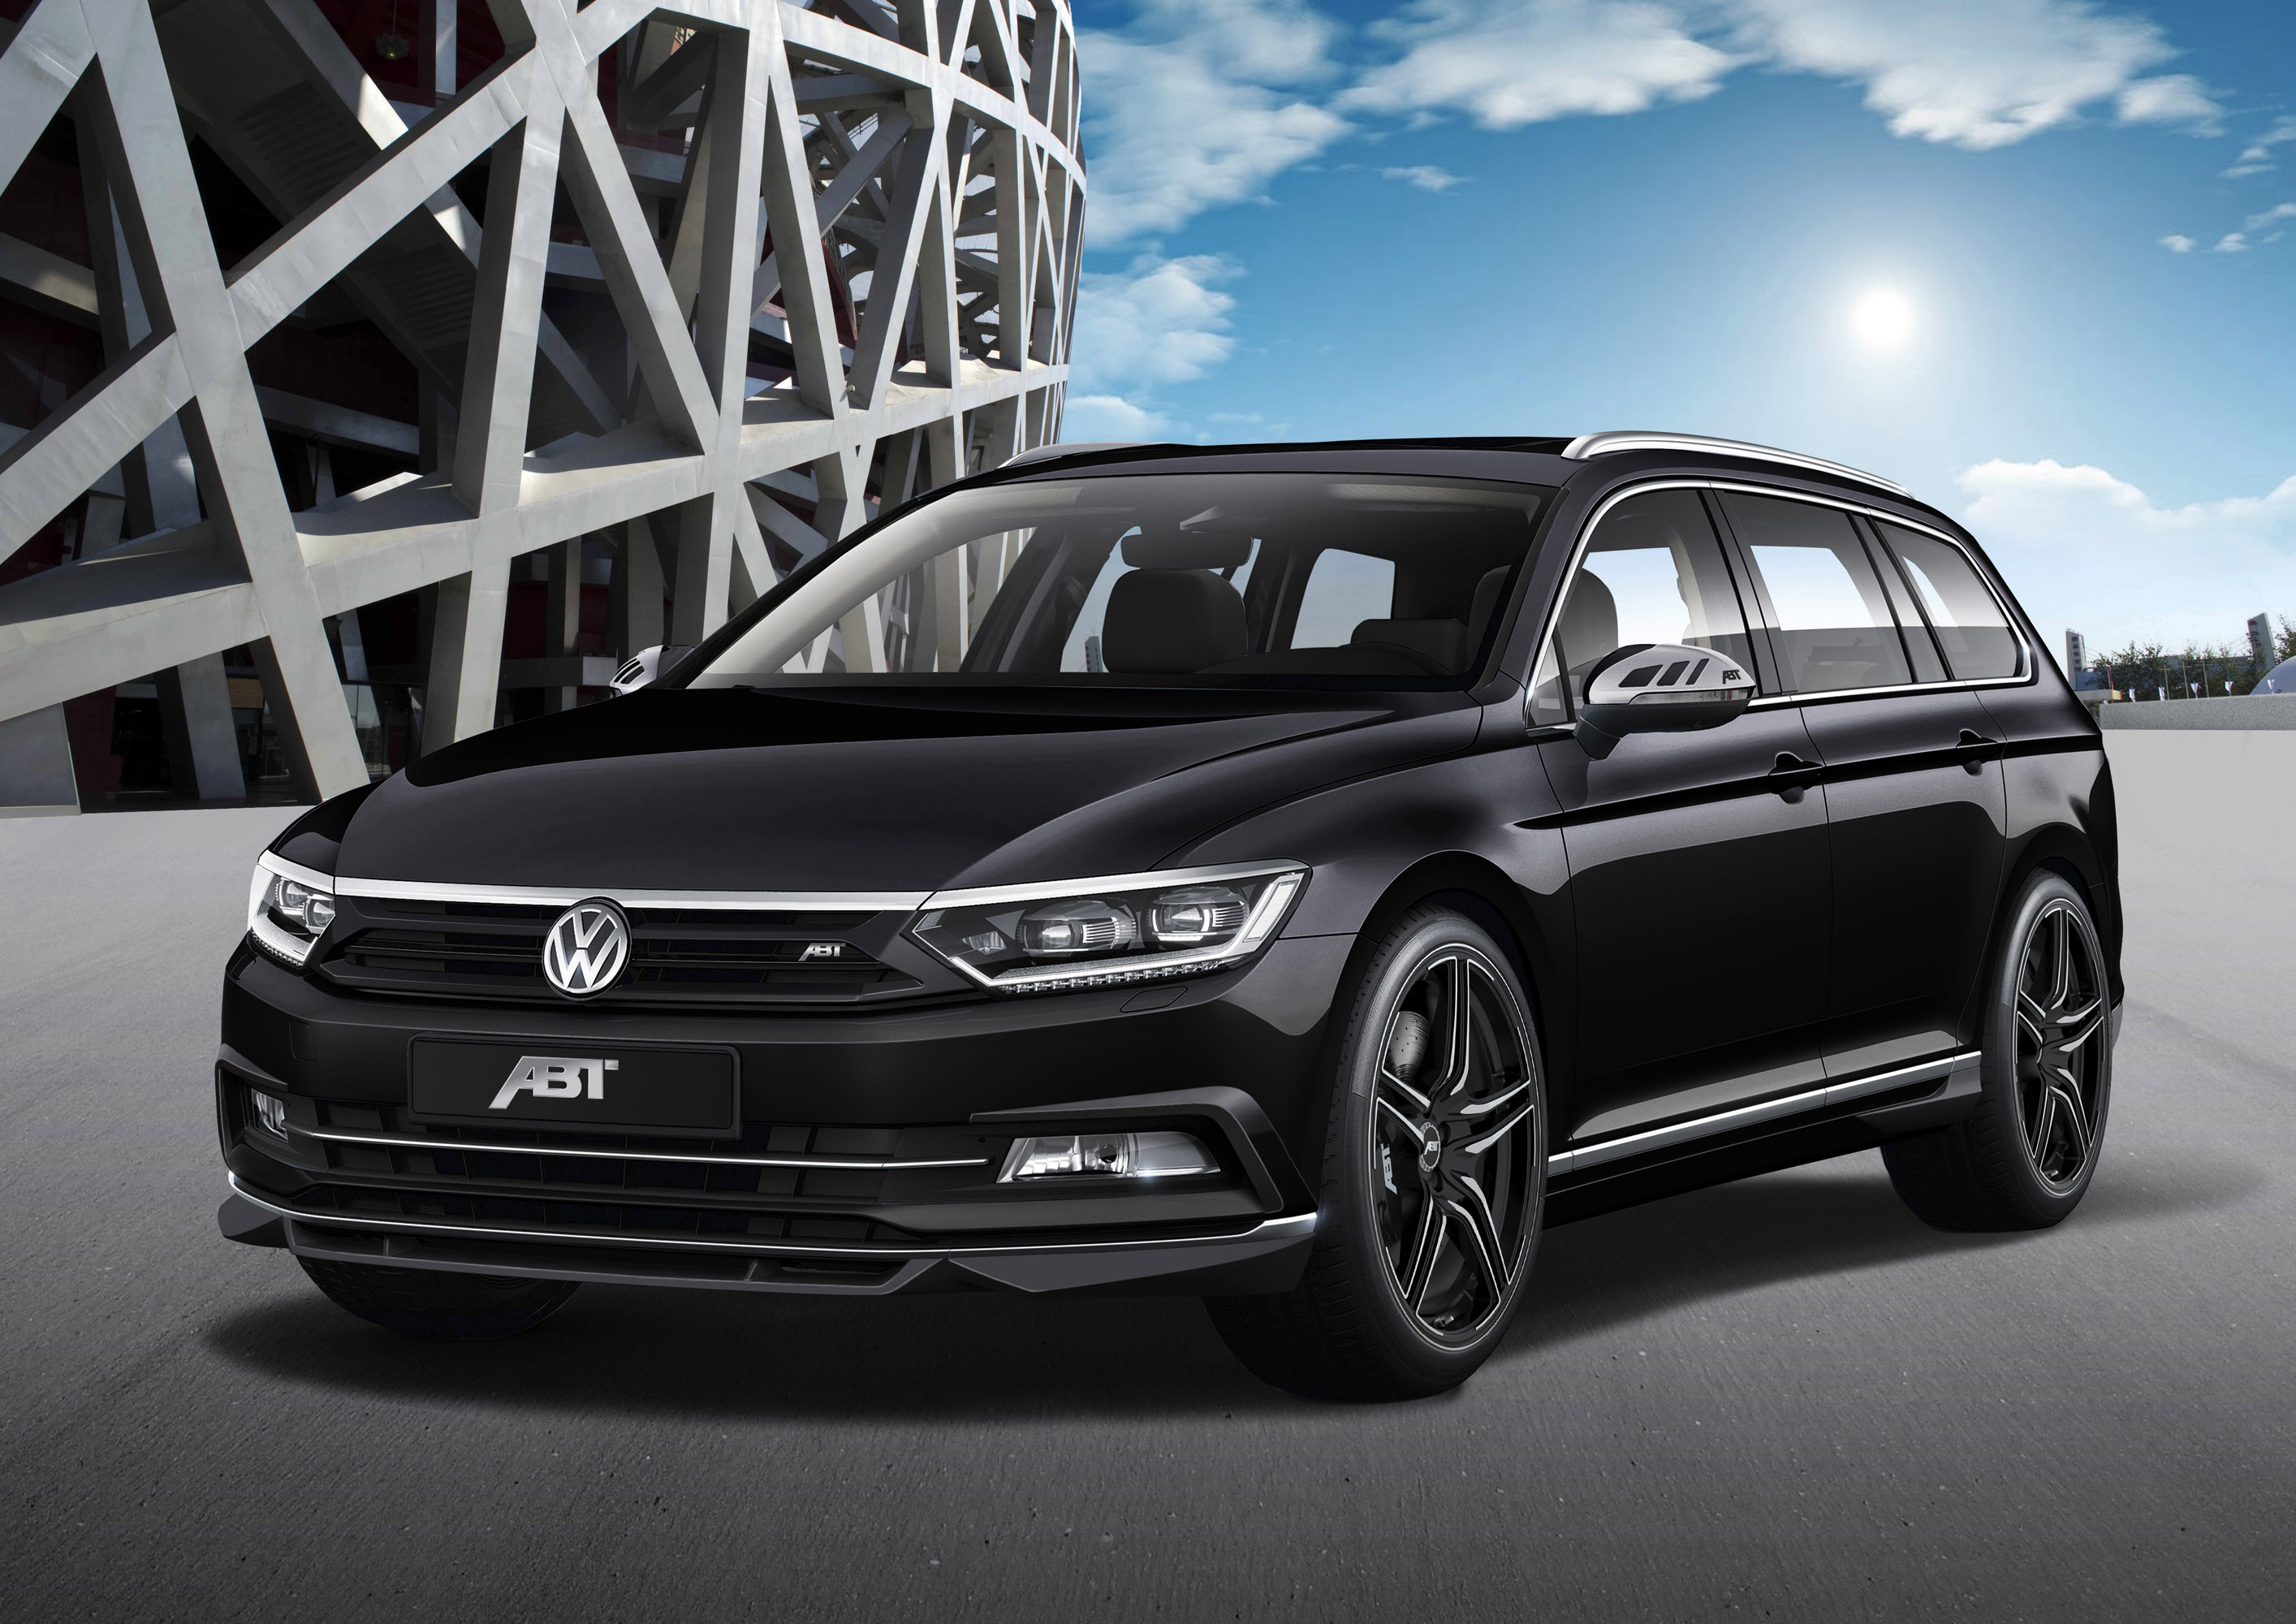 See The Transformed Abt Volkswagen Passat B8